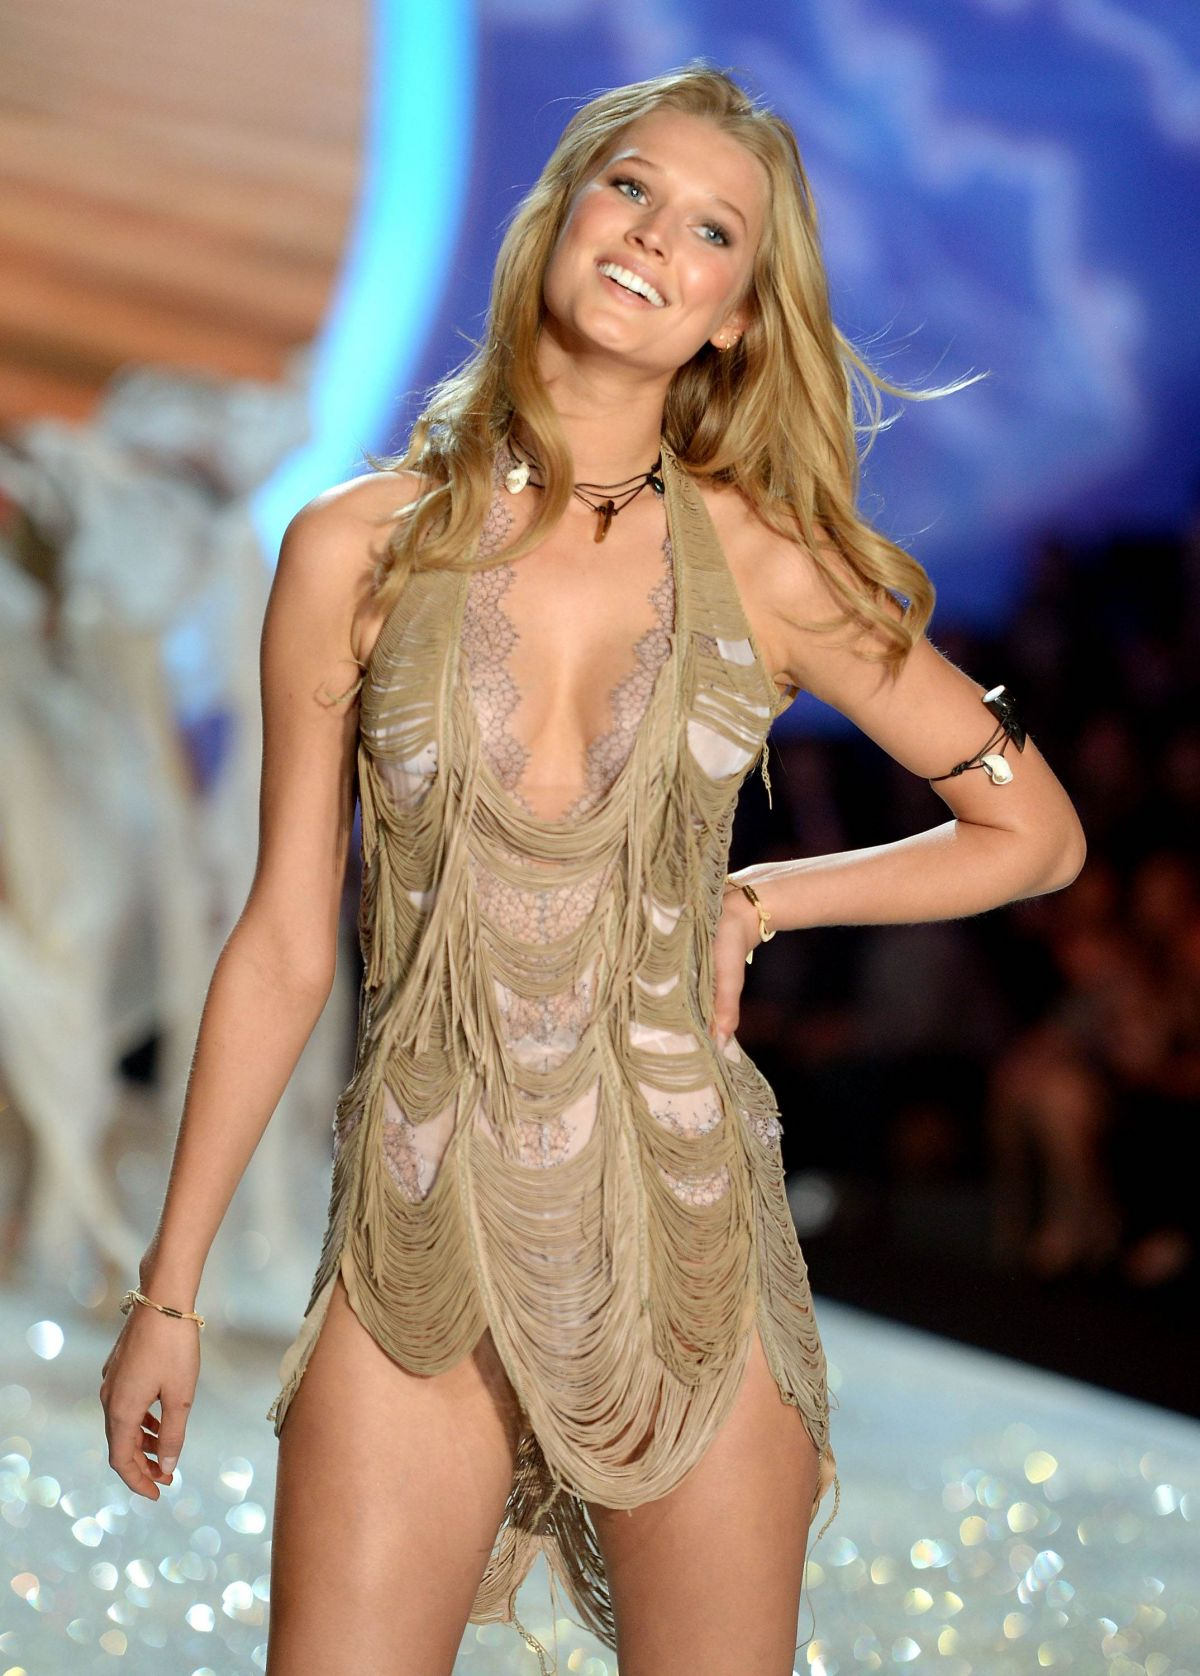 Toni Garrn At Victoria's Secret Fashion Show - Celebzz ...